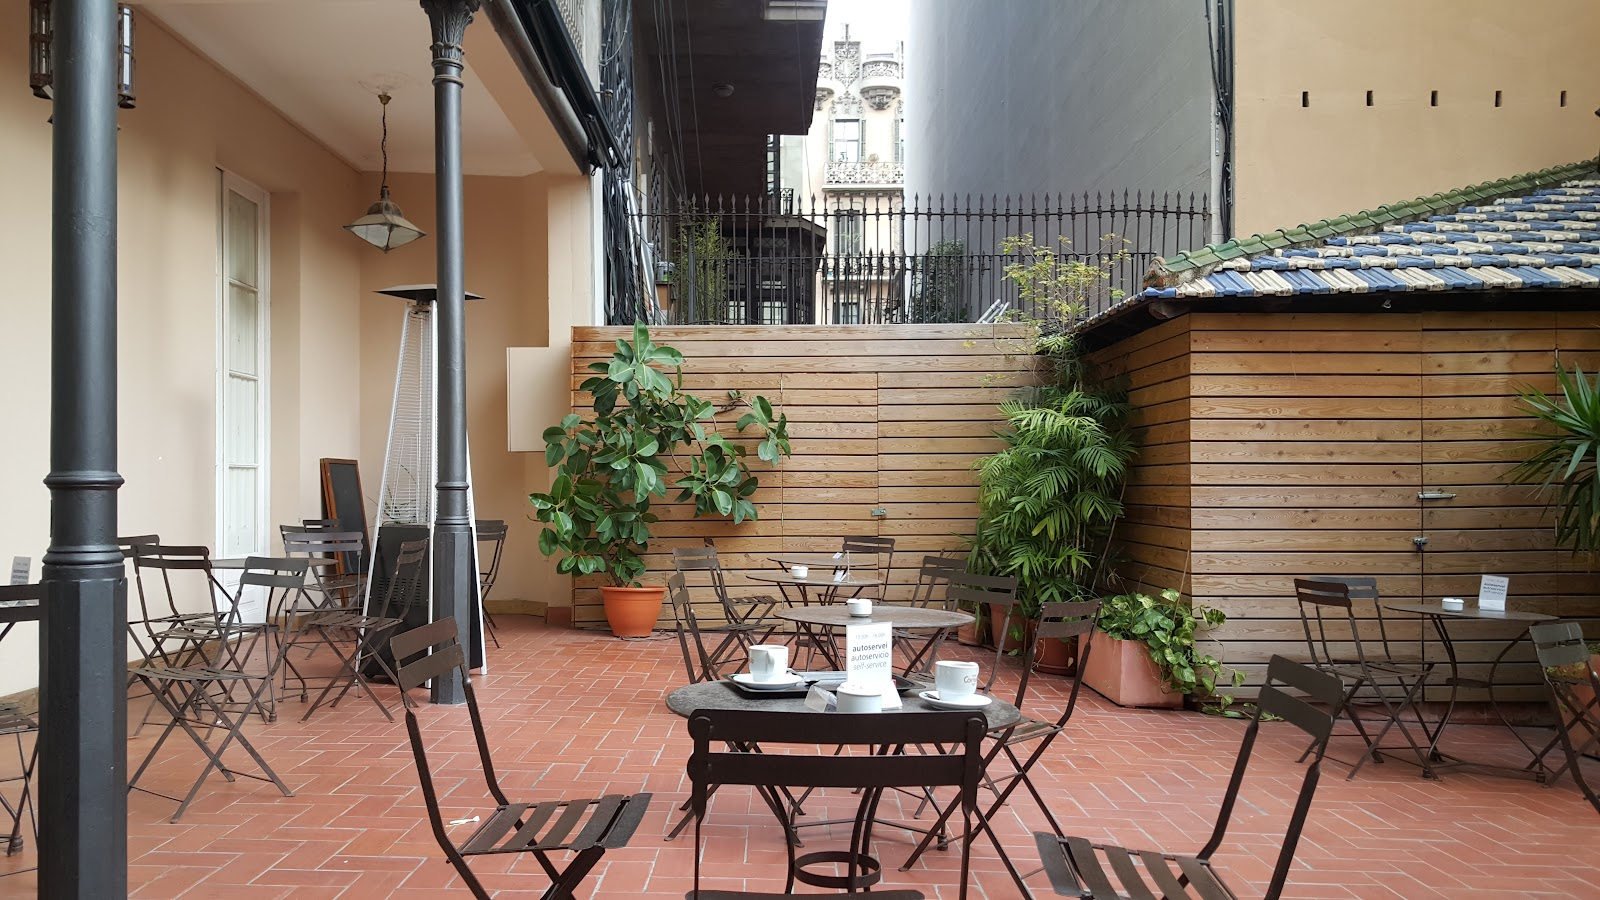 Laie: A Work-Friendly Place in Barcelona